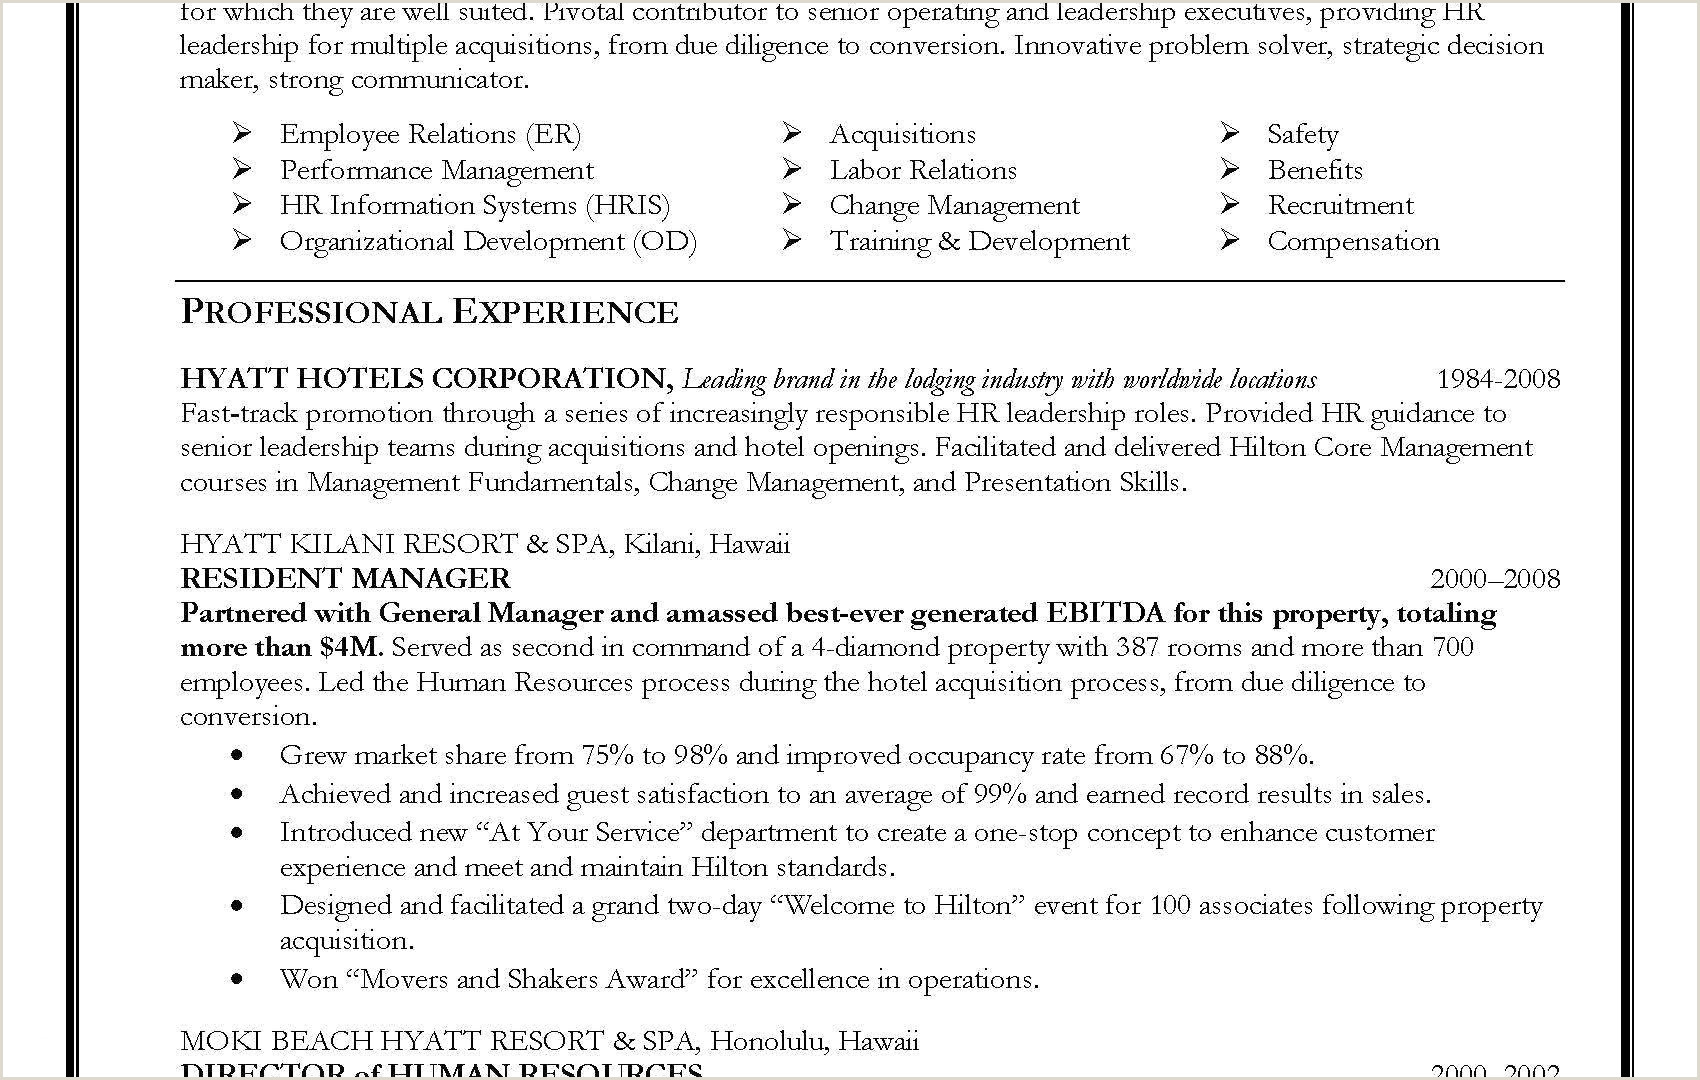 Human Resources Manager Resume Samples Best Human